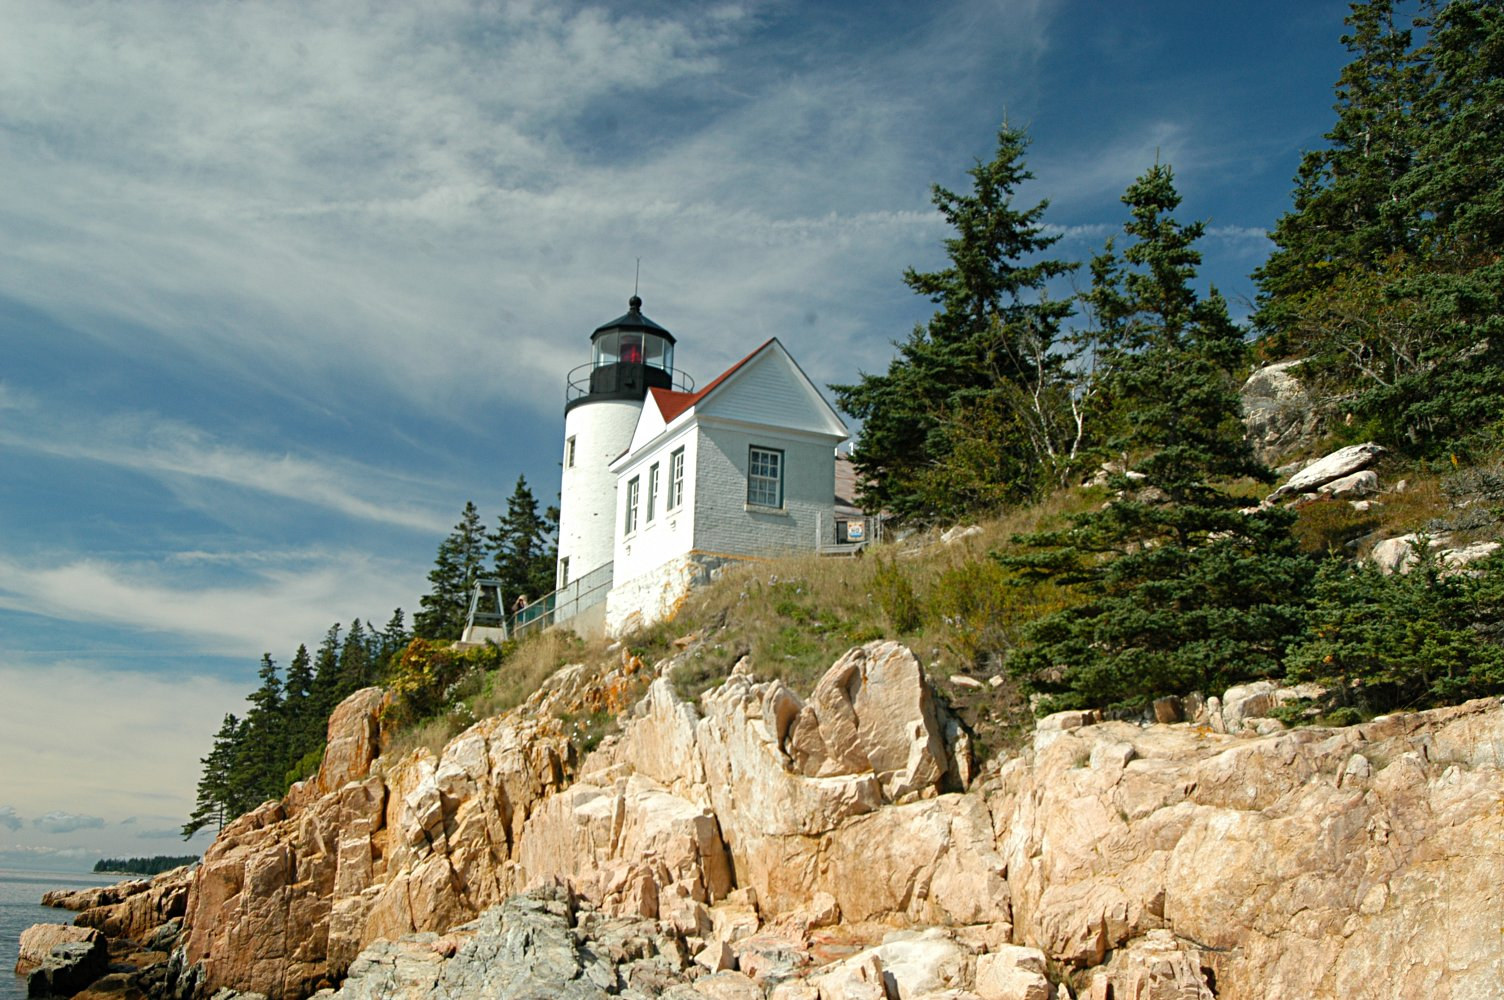 bass harbor cougars dating site This ancient roman lighthouse, dating back to the late 1st century ad, has gained recognition as a unesco world heritage siteit can be found towering over the entrance of la coruña harbor in north-western spain.